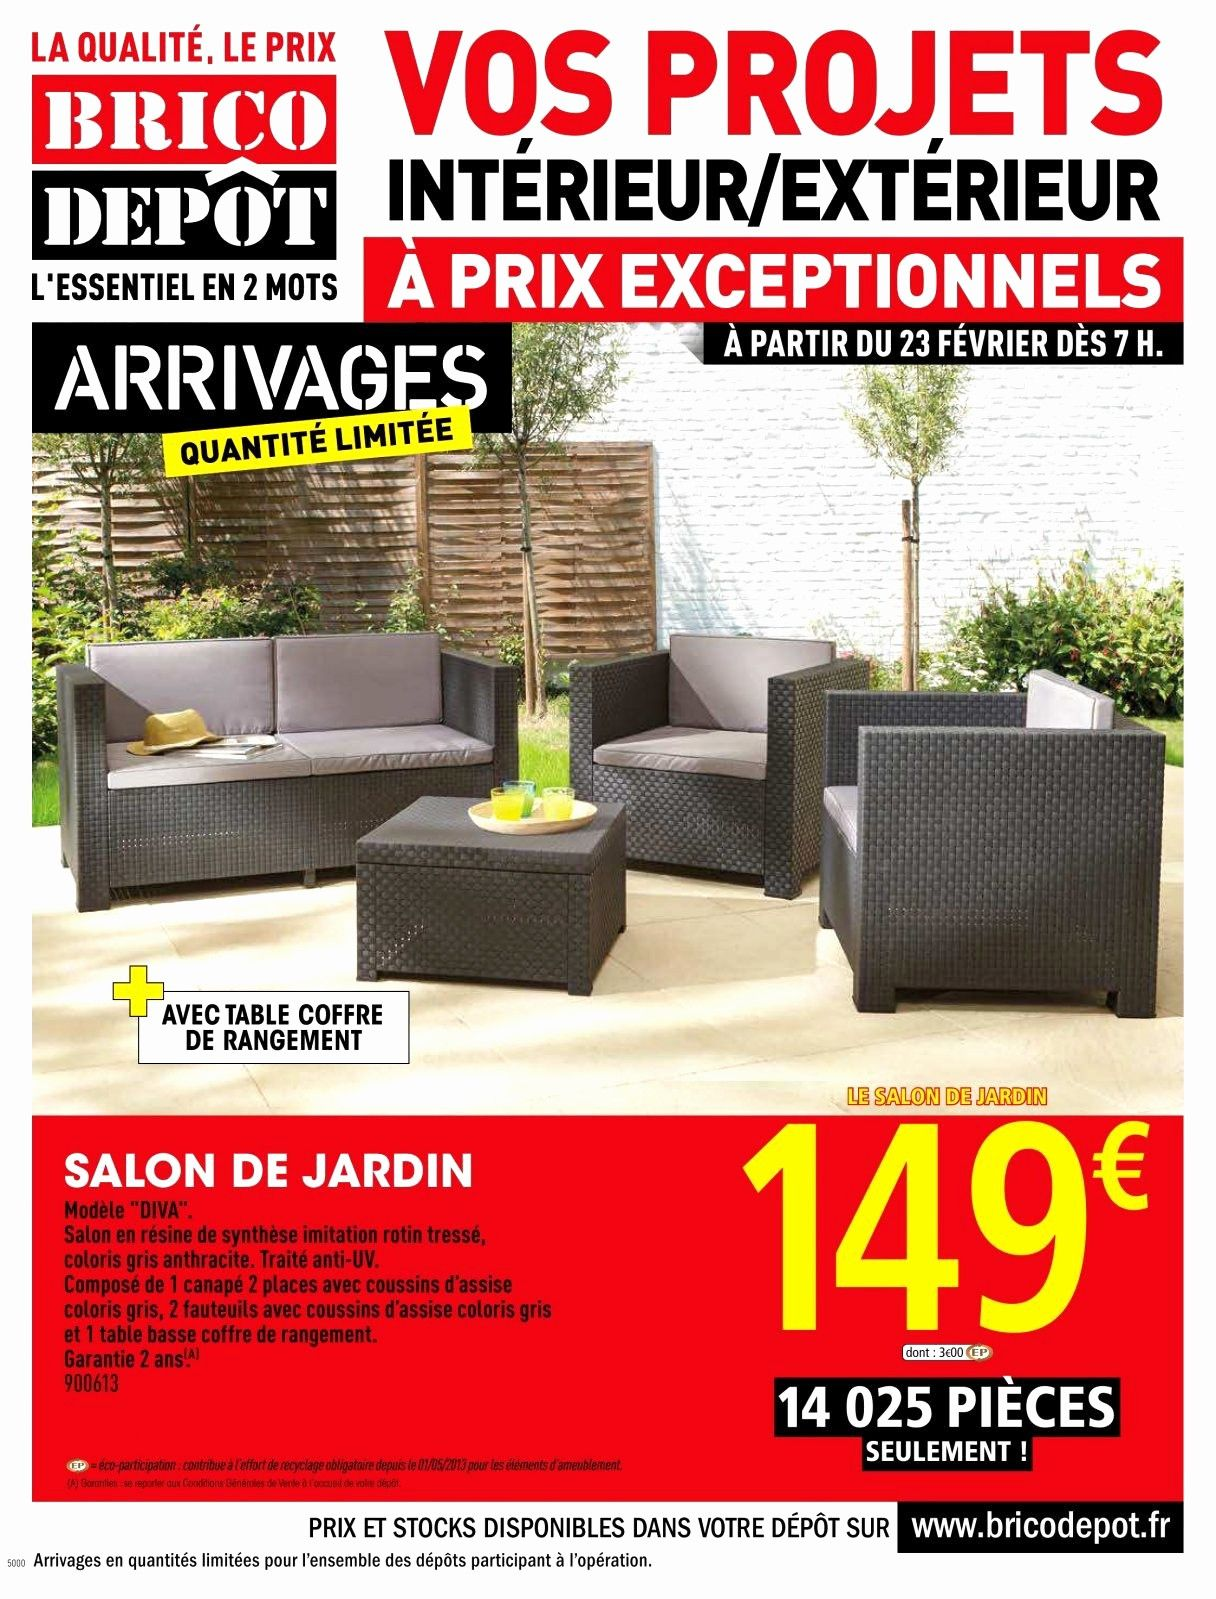 Elegant Barriere De Securite Brico Depot Outdoor Furnit Furniture Design Living Room Outdoor Furniture